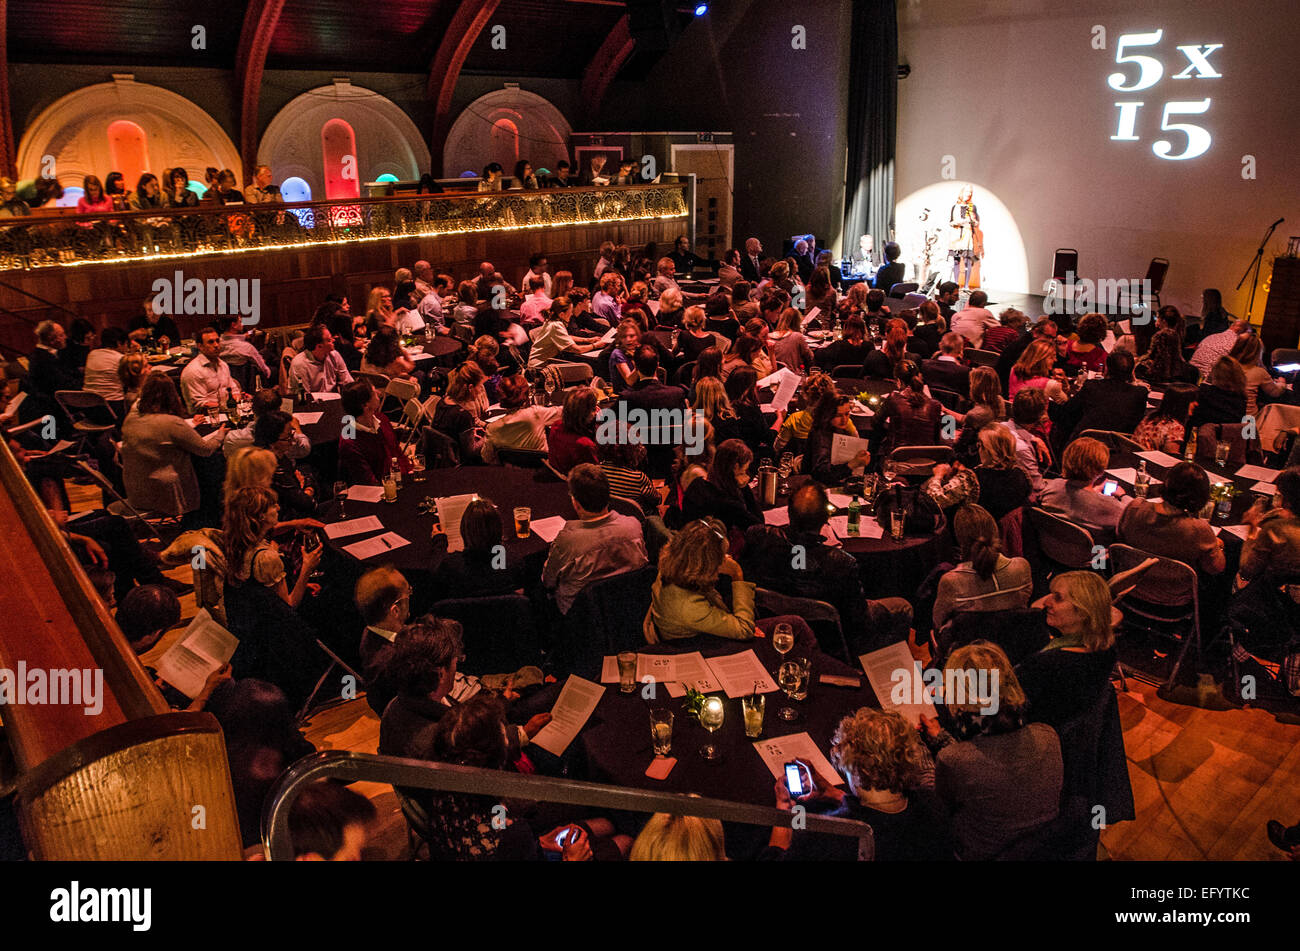 Immodesty Blaize, Elif Shafak, Charles Glass and Ed Smith and Richard Holloway 5 x 15 event @ The Tabernacle , London - Stock Image